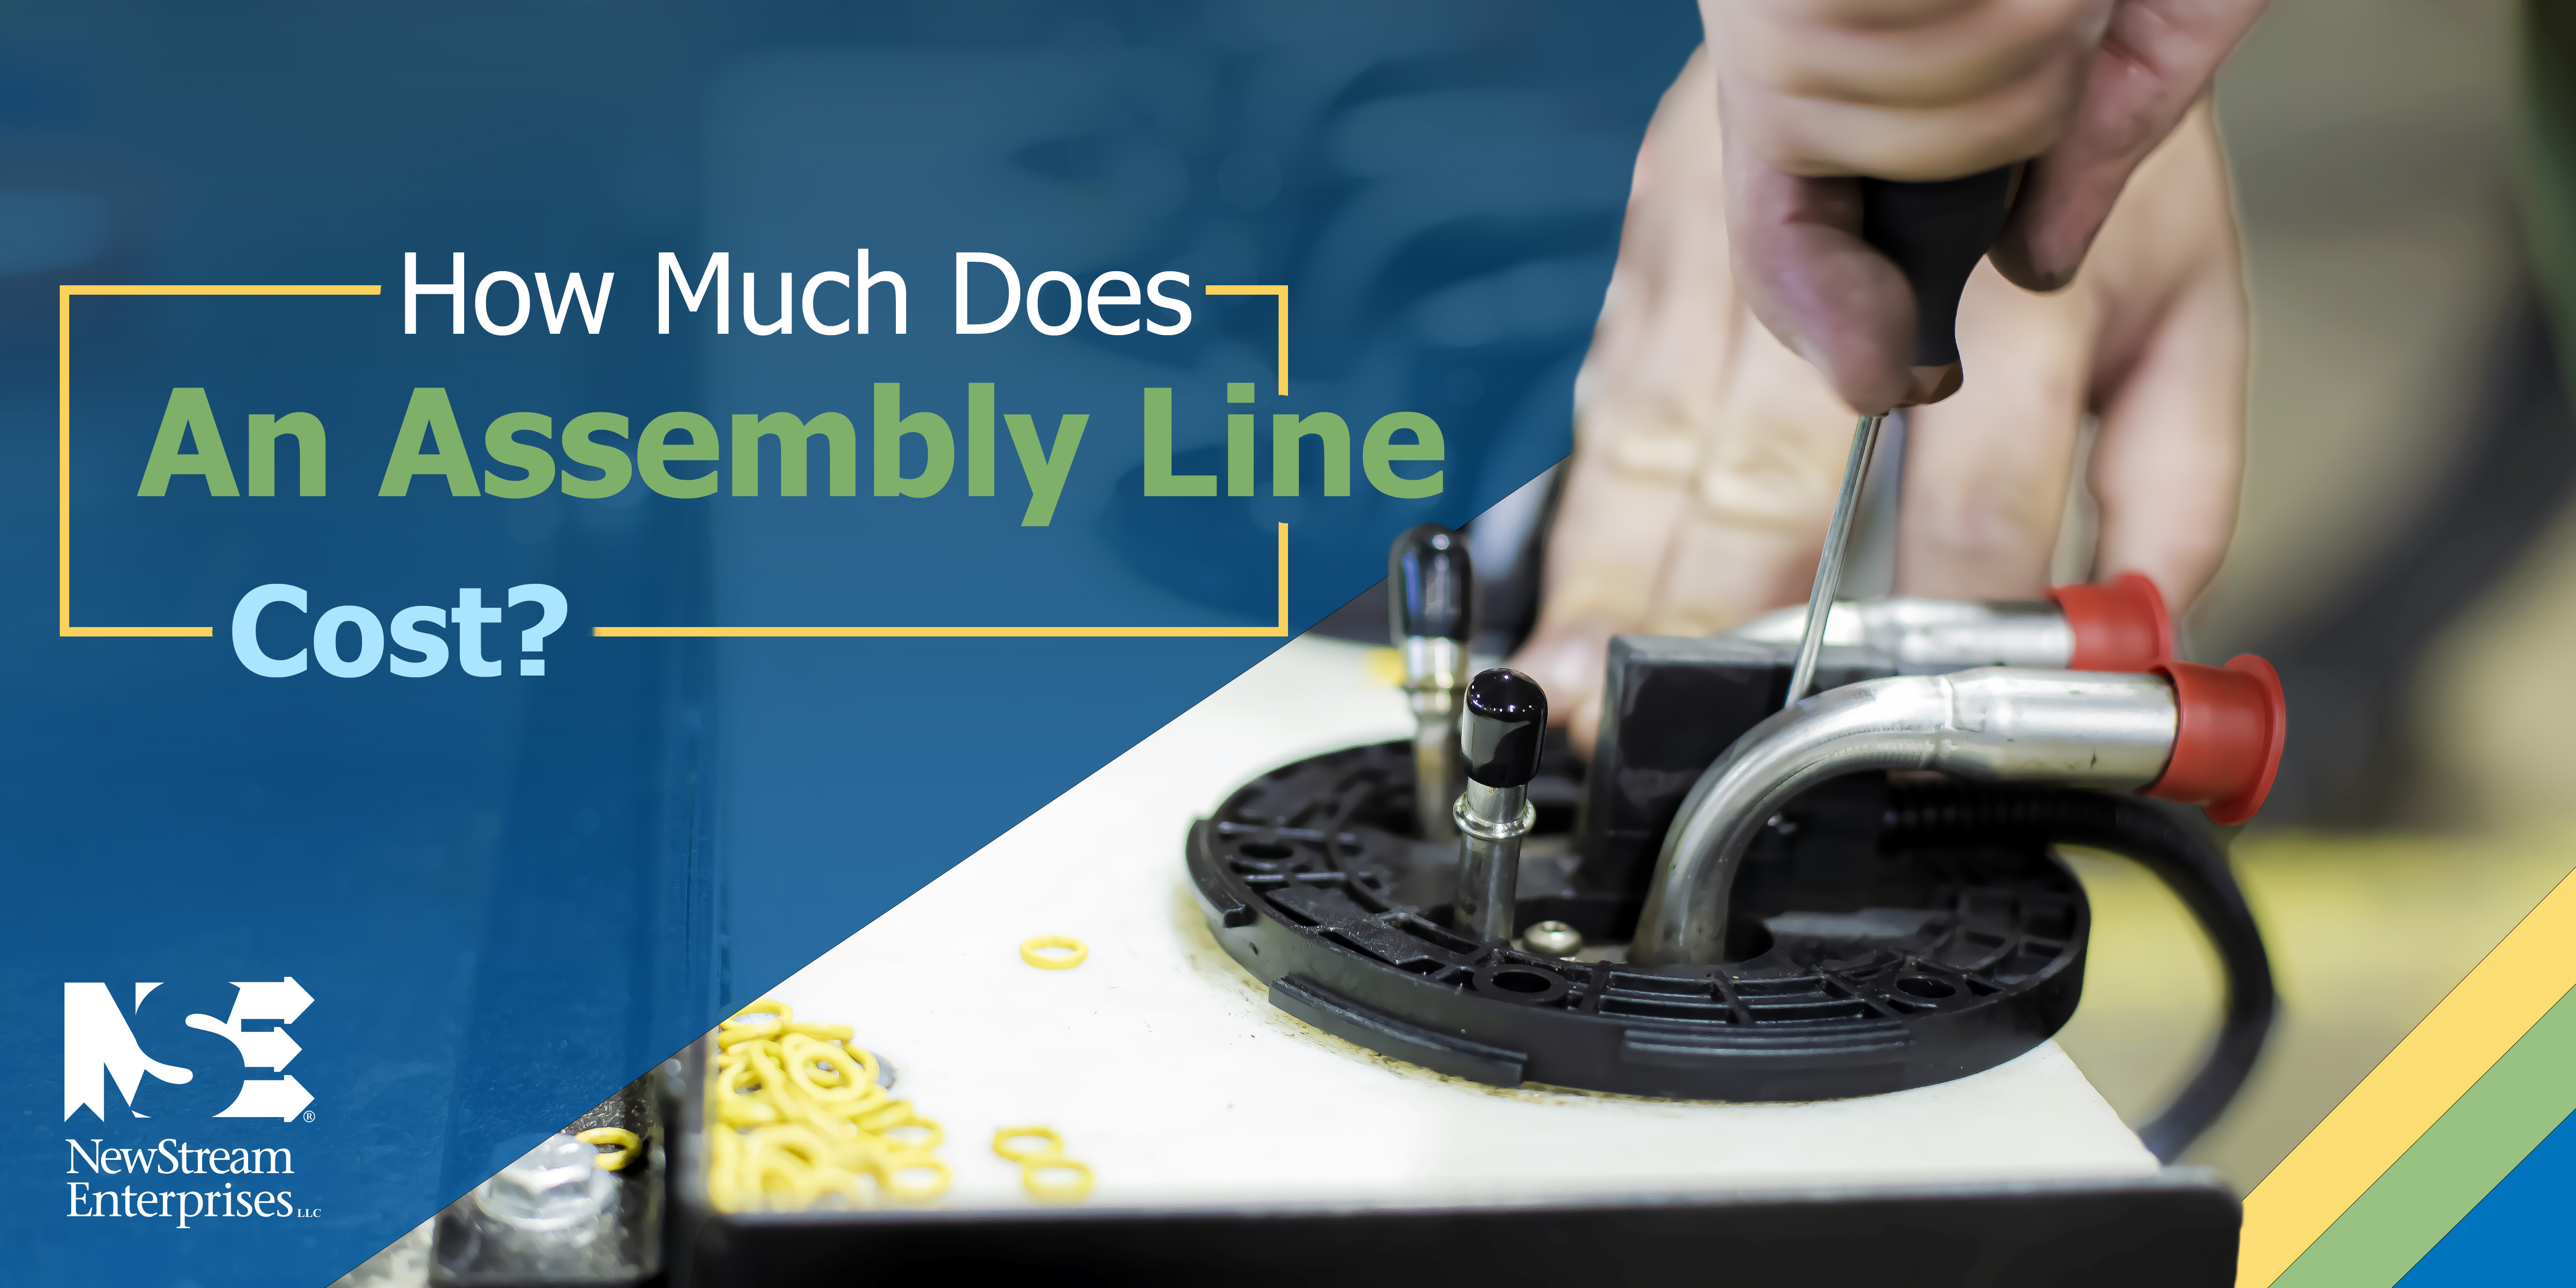 How Much Does an Assembly Line Cost?